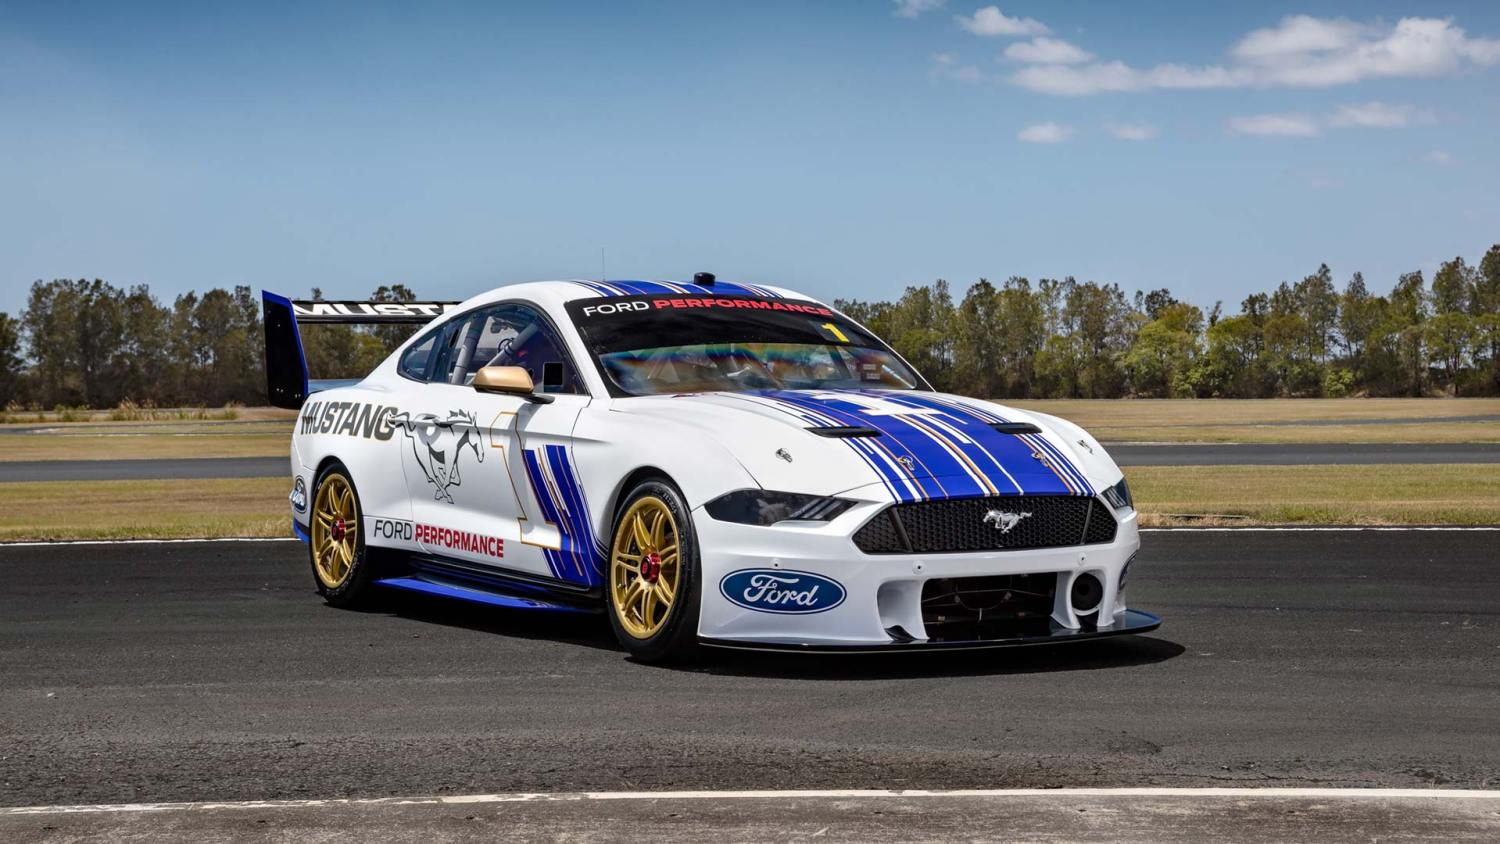 2019 Ford Mustang Supercar Fully Revealed